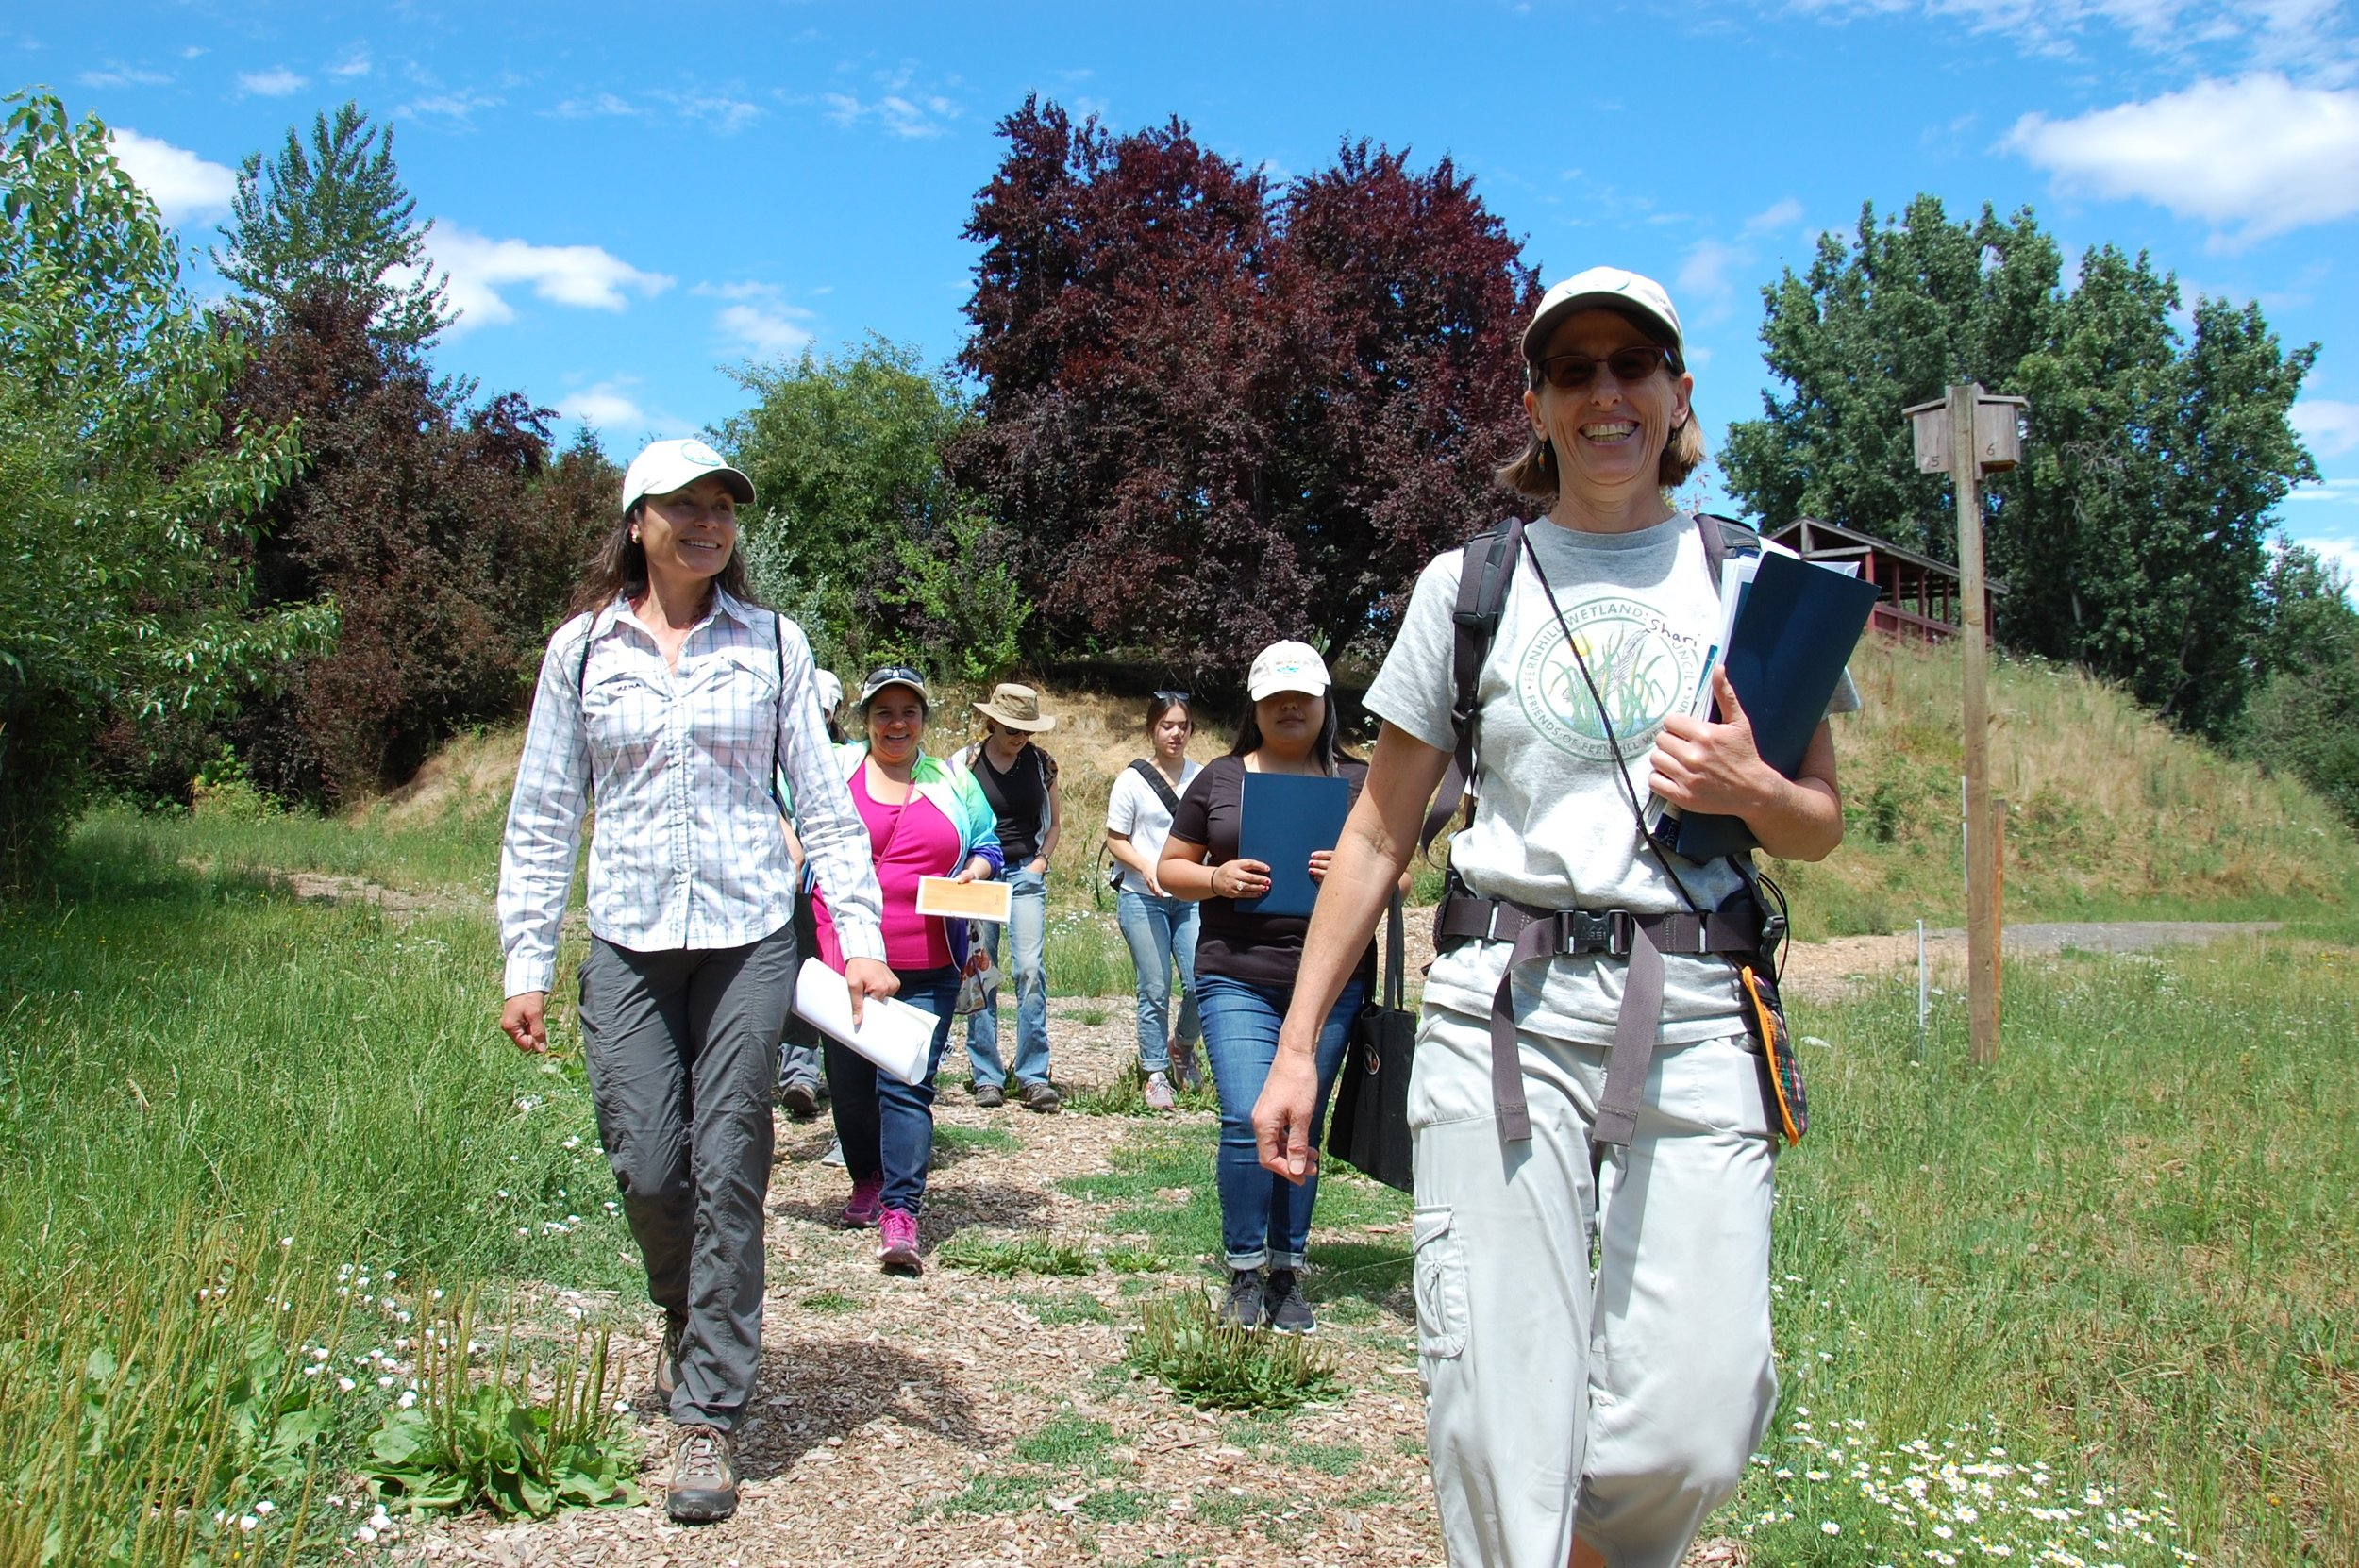 Local ecologists, Lorena (left), and Shari (right), lead members of the group through Jackson Bottom Wetlands. The blue folders contain facts and information that Naturalists will share with their walking groups, both in English and Spanish, as they explore the wetlands.